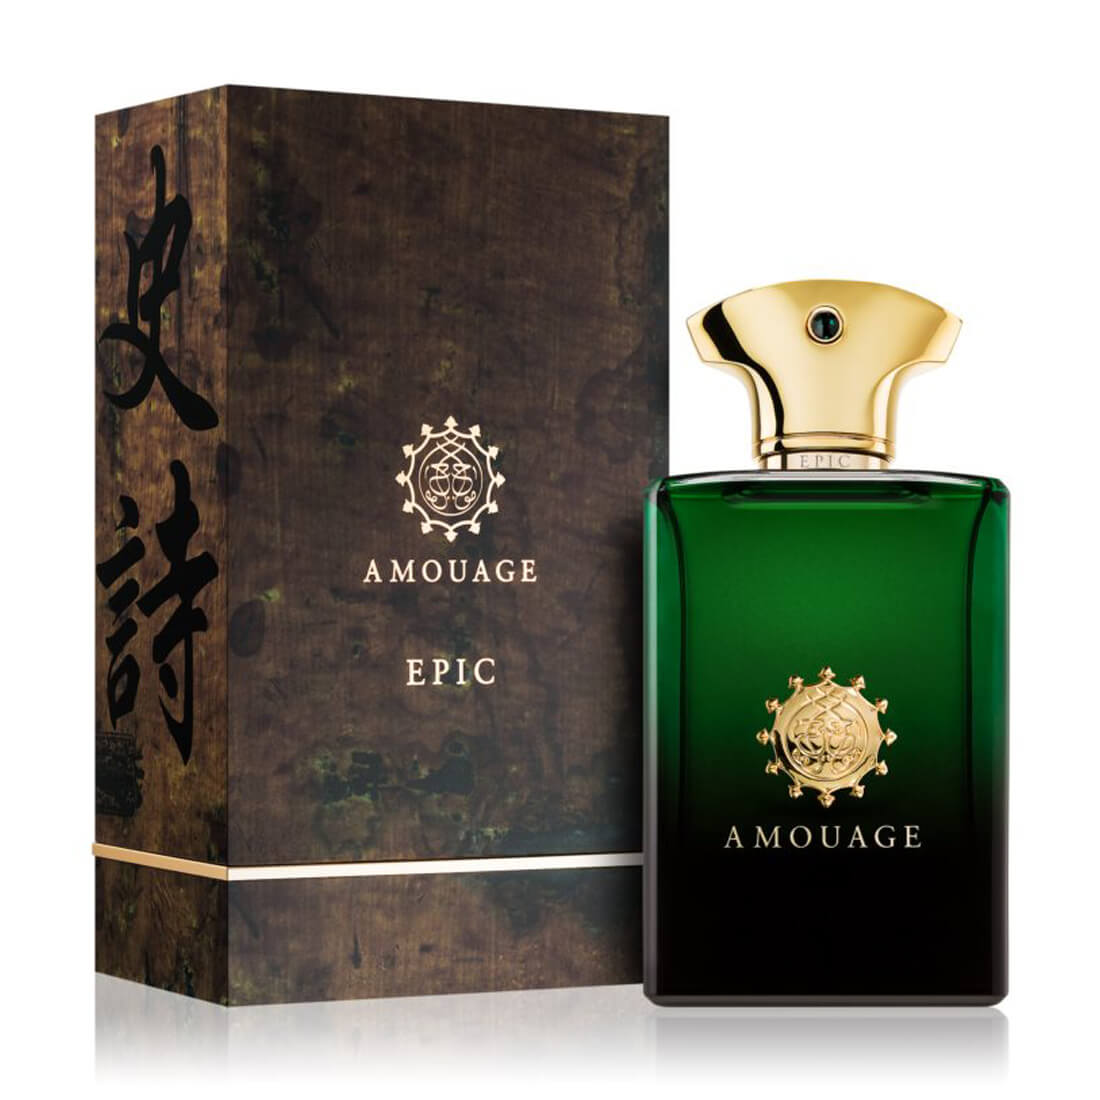 Amouage Epic Eau De Perfume For Men 100ml